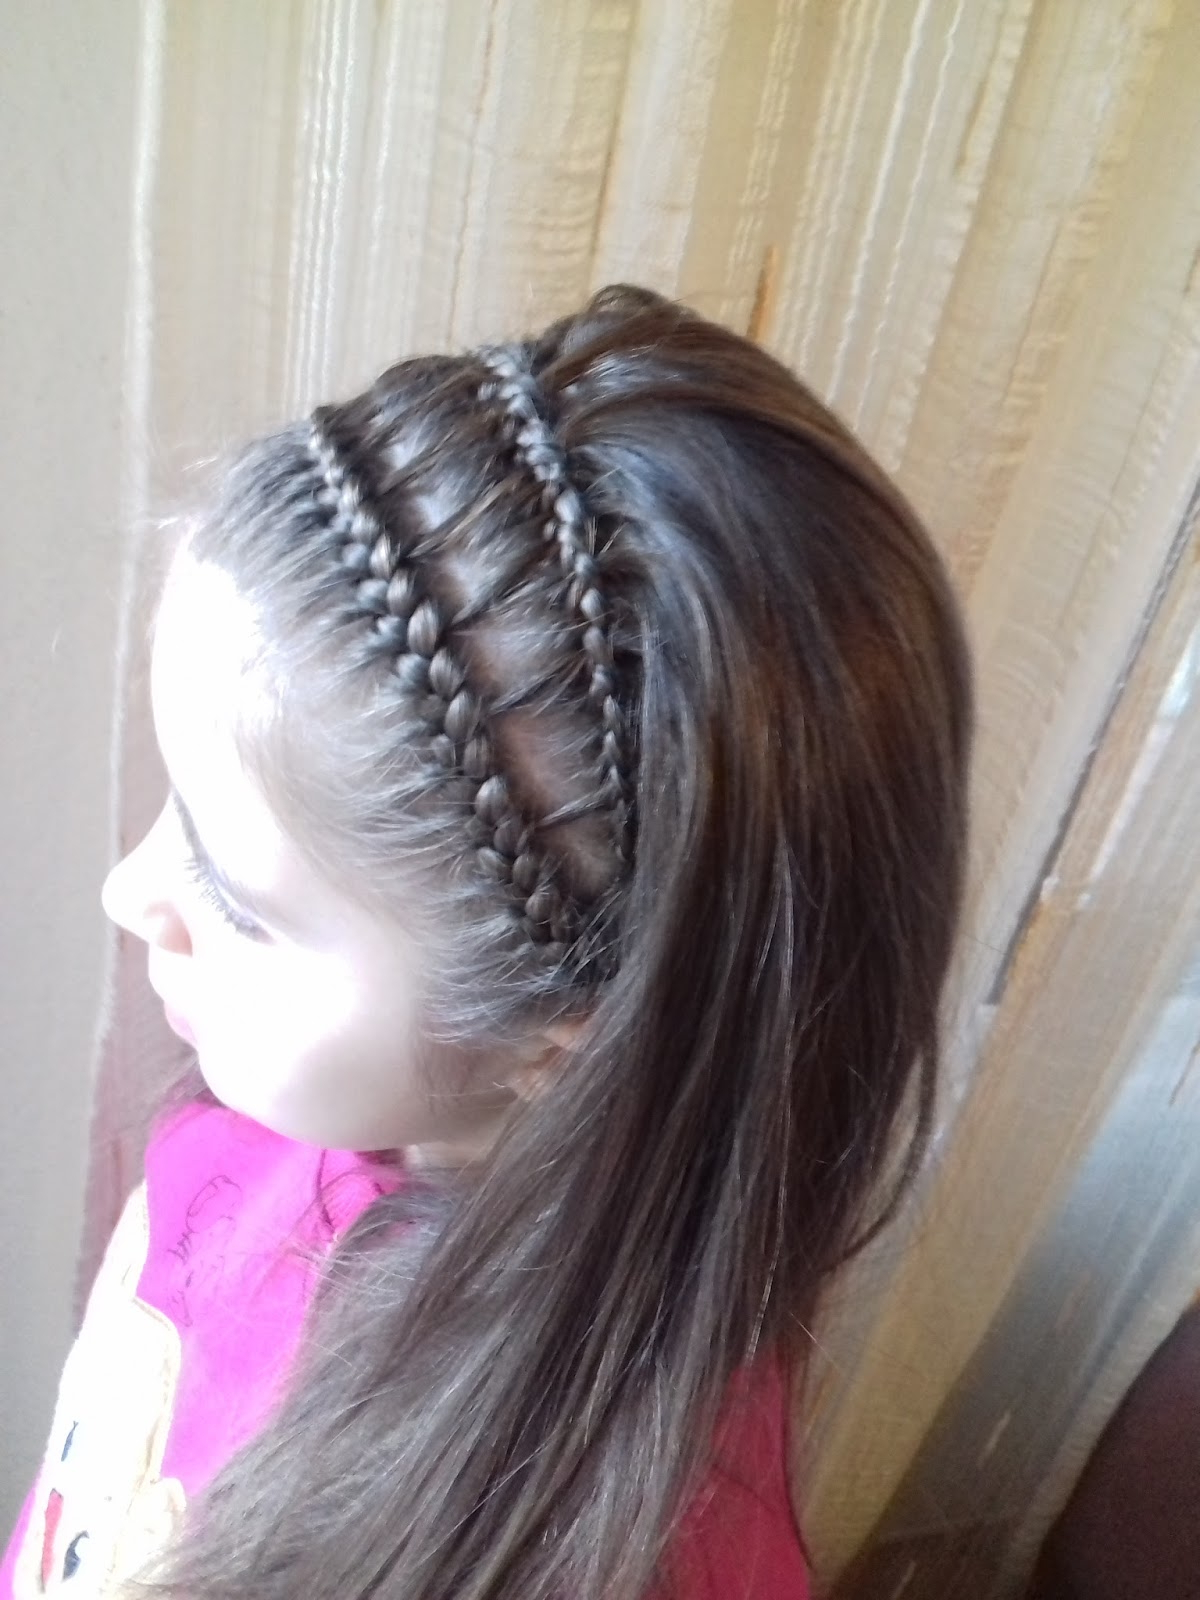 Well Liked Corset Braid Hairstyles Throughout Fashionable Hair Braids: Few Ways Of Corset Braiding (View 19 of 20)